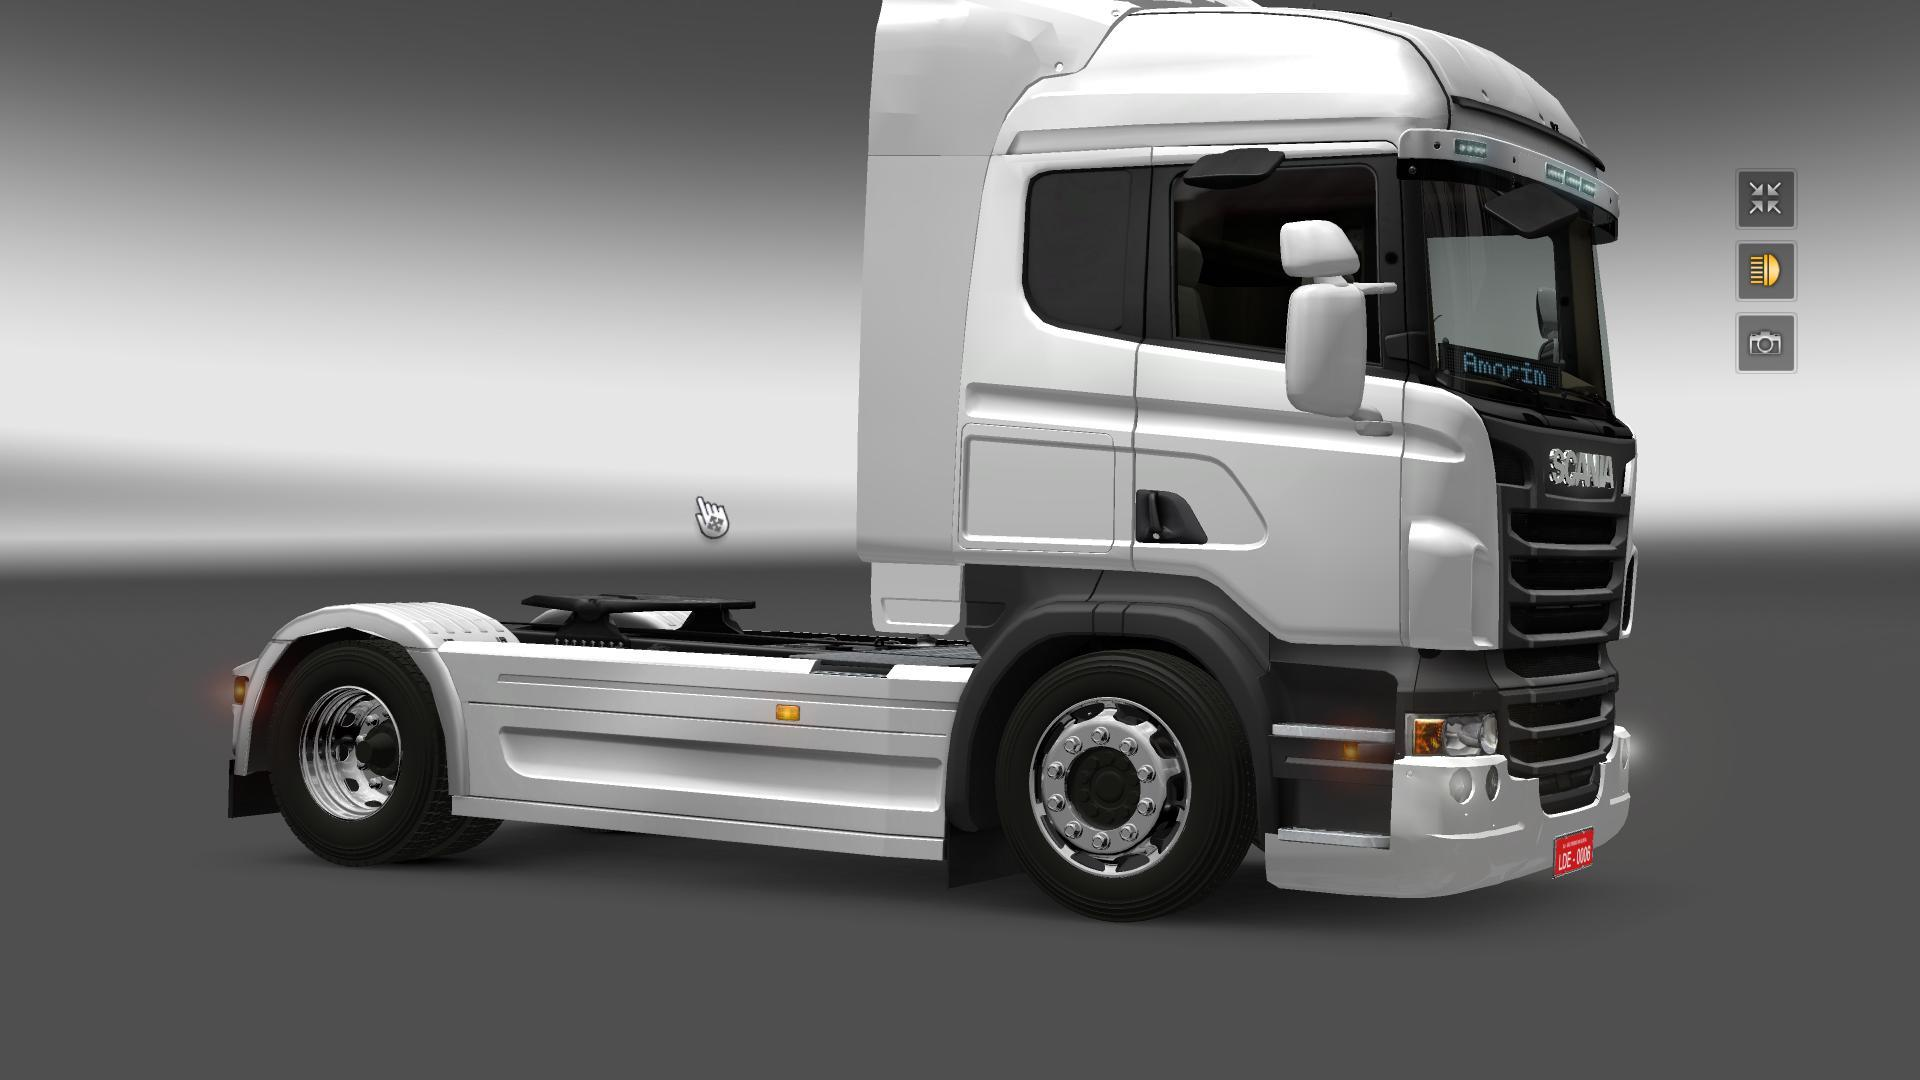 Parts For Cars >> NEW WHEELS FOR SCANIA + TUNING MOD -Euro Truck Simulator 2 Mods